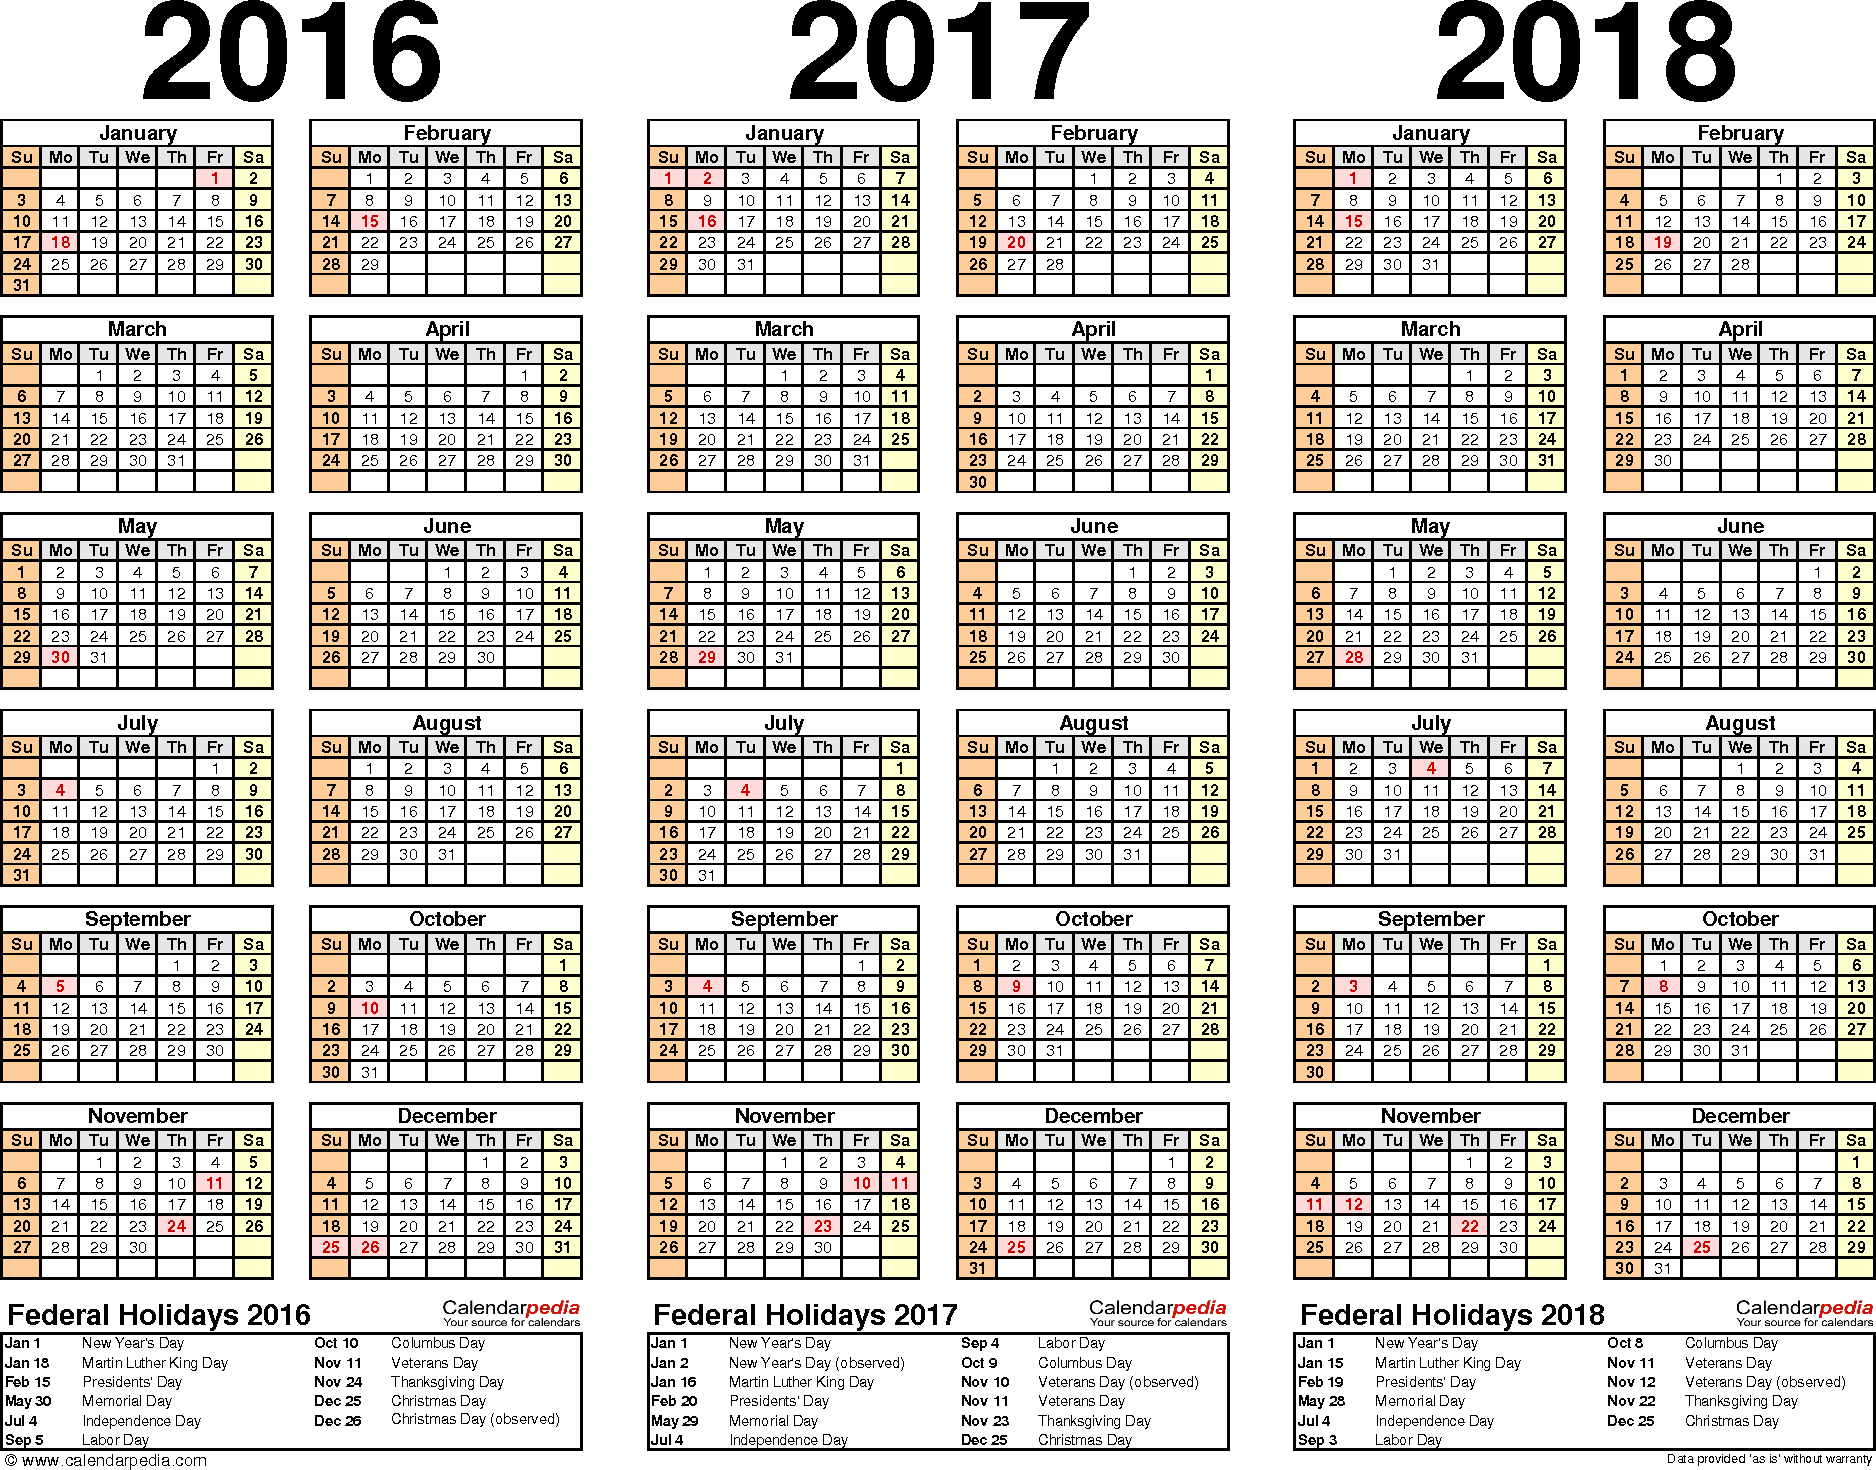 Download Template 2: PDF template for three year calendar 2016-2018 (landscape orientation, 1 page)